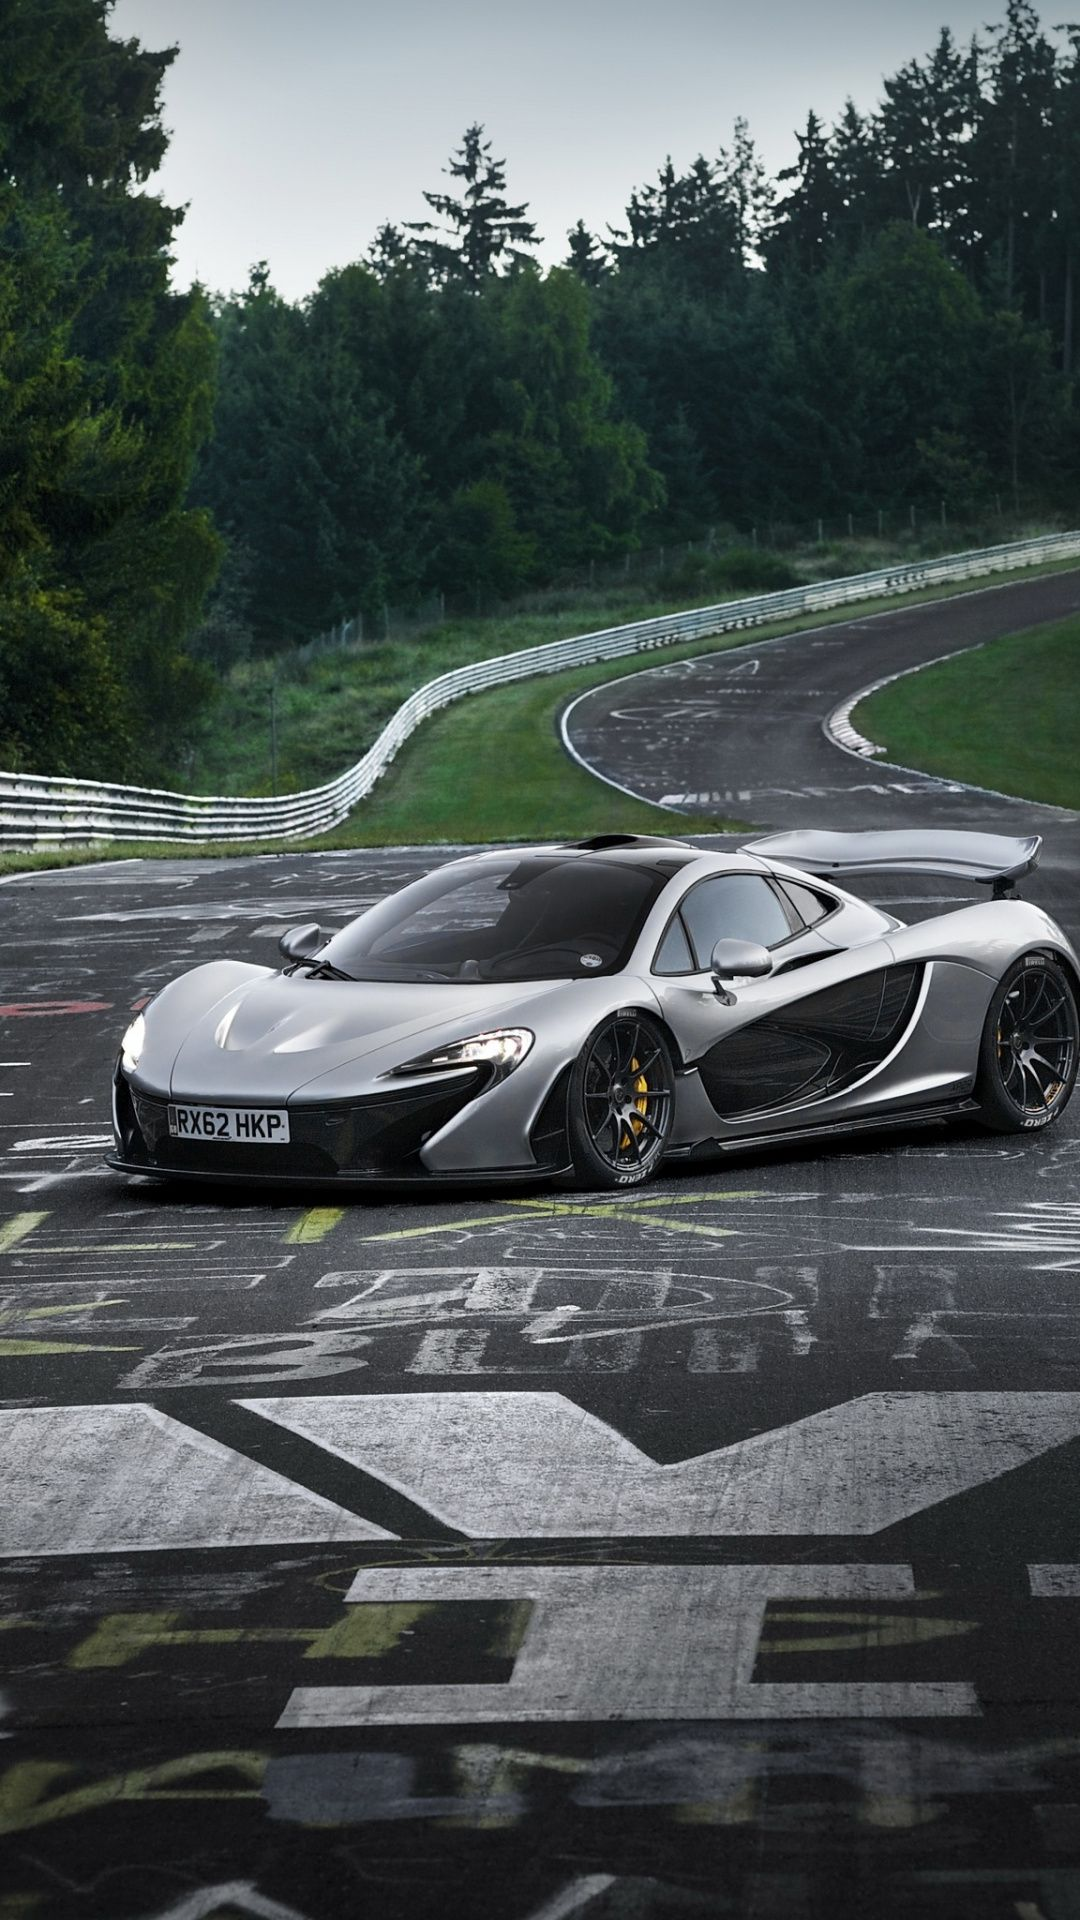 Sports Car On Road Mclaren P1 Wallpaper Mclaren P1 Sports Car